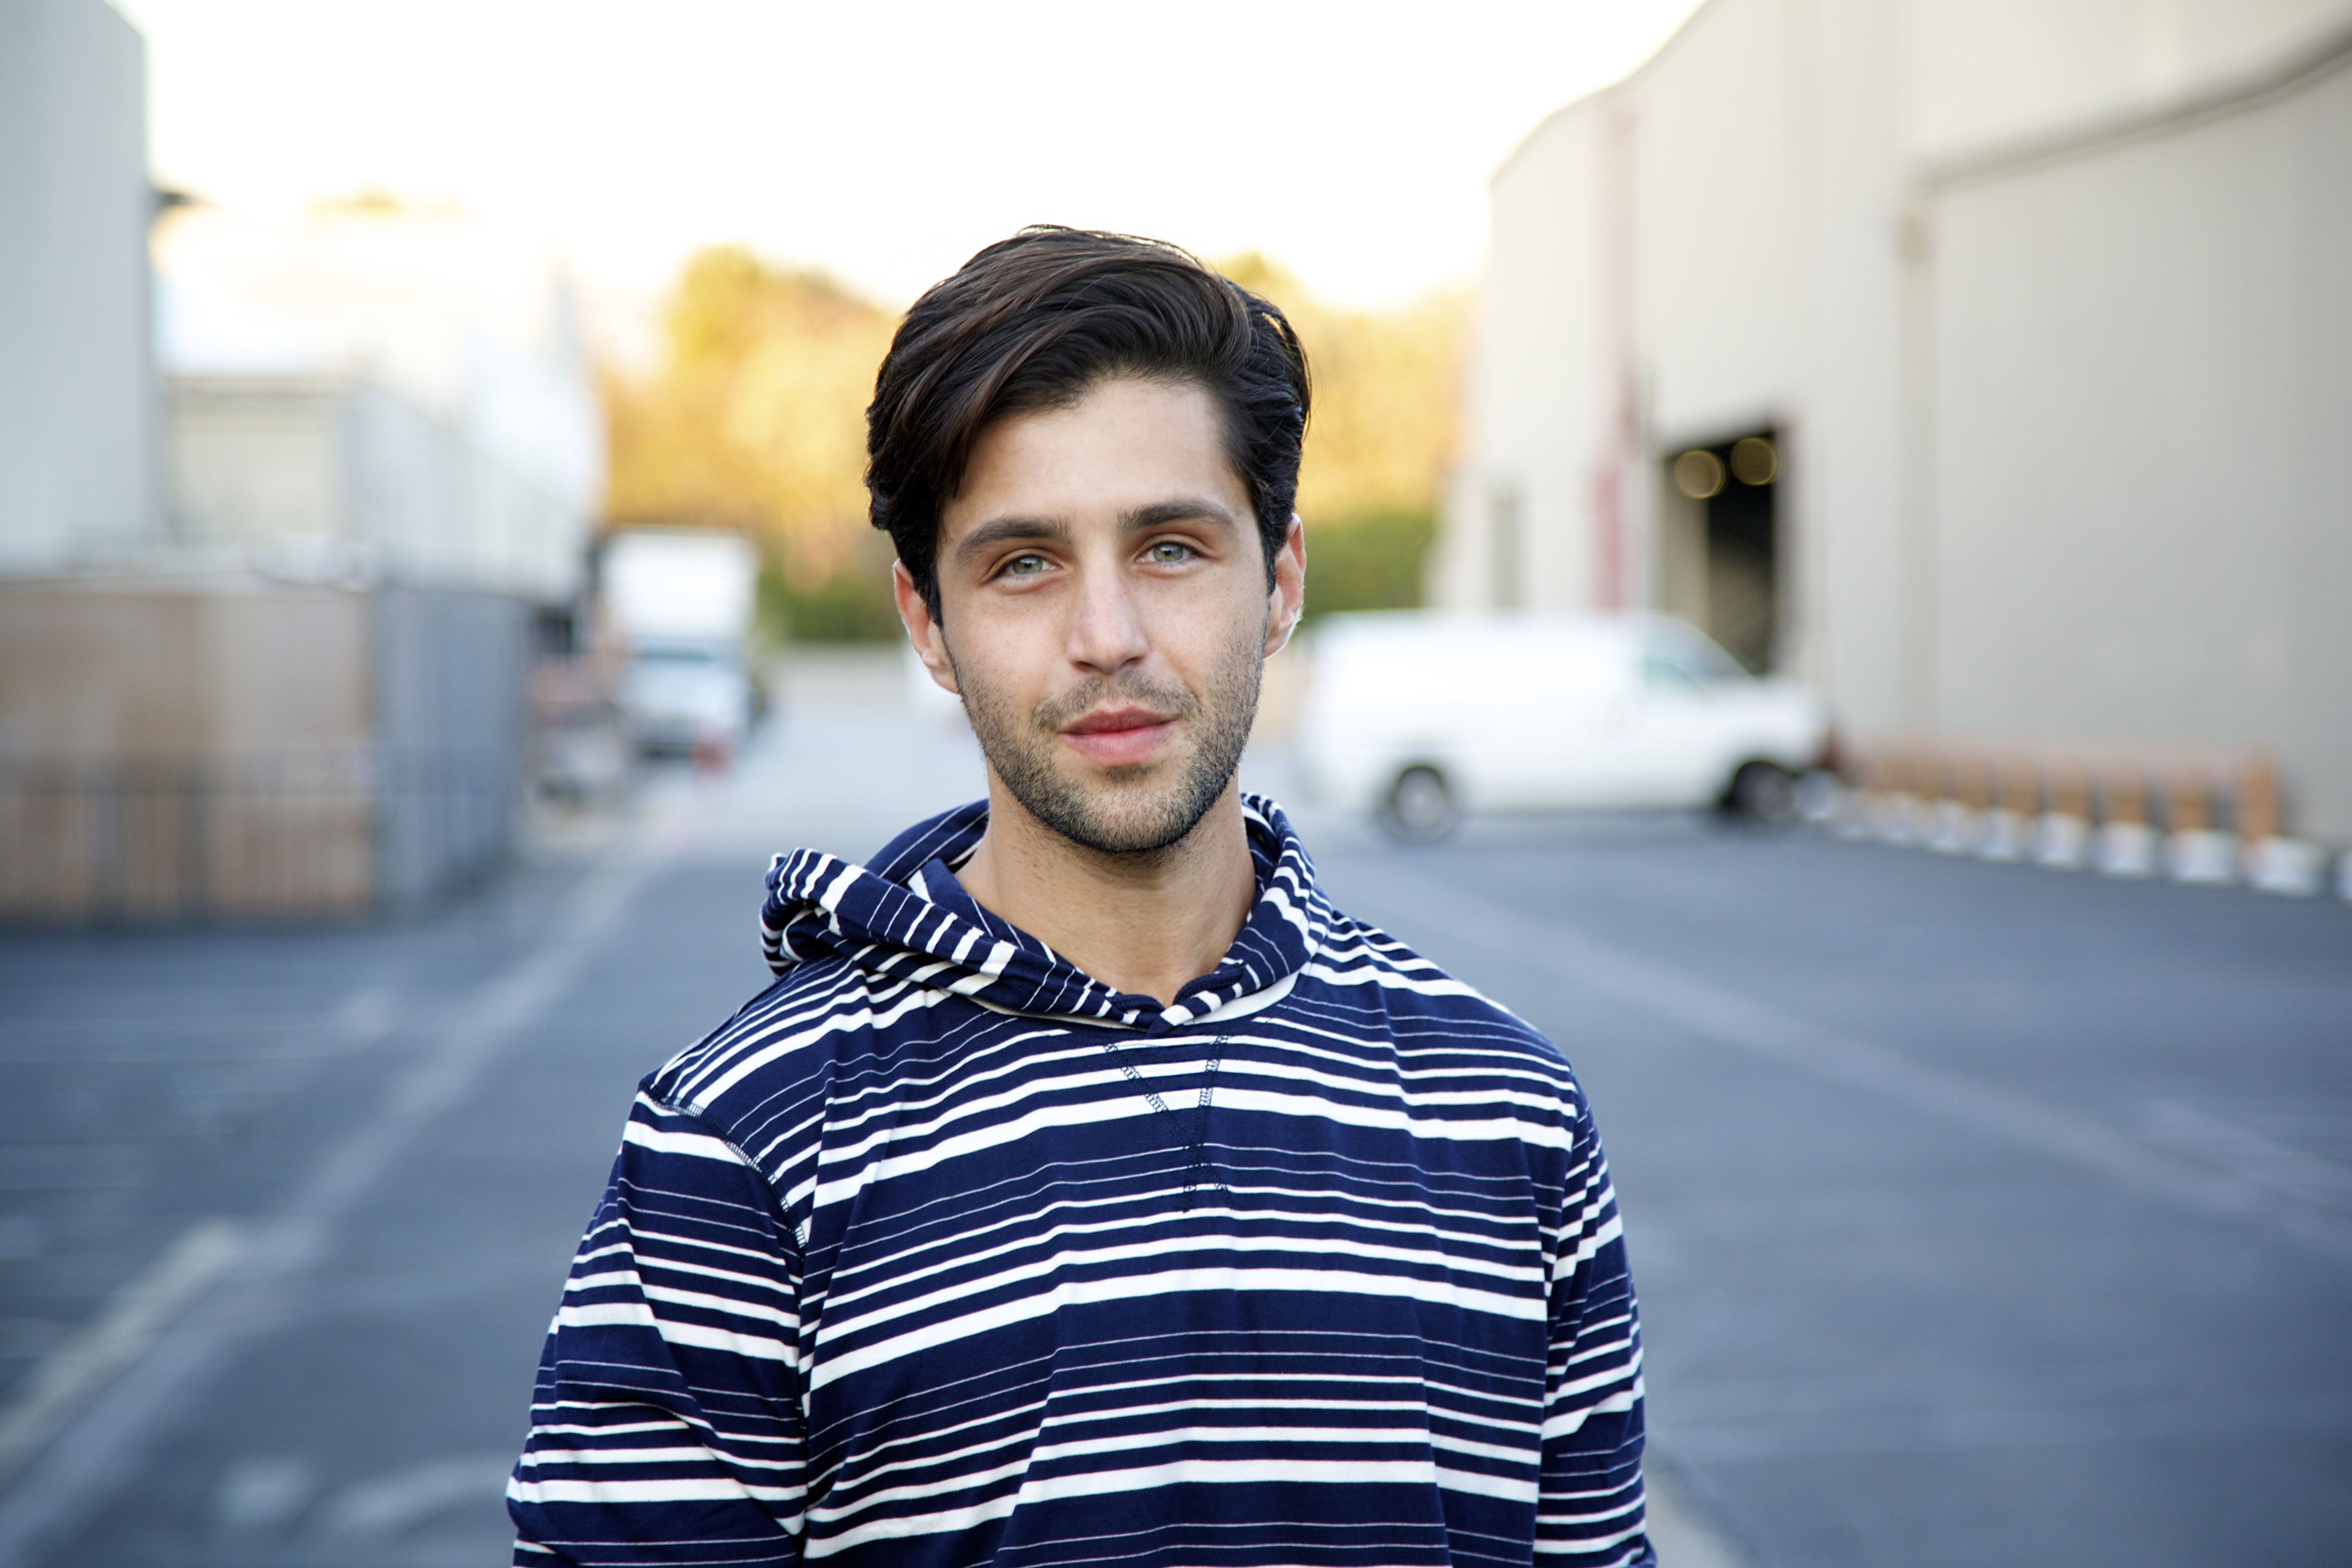 Josh peck has established himself as one of hollywoods rising actor and vine star josh peck has been cast as a lead opposite john stamos in full house alums single camera comedy pilot at fox in the untitled project ccuart Image collections